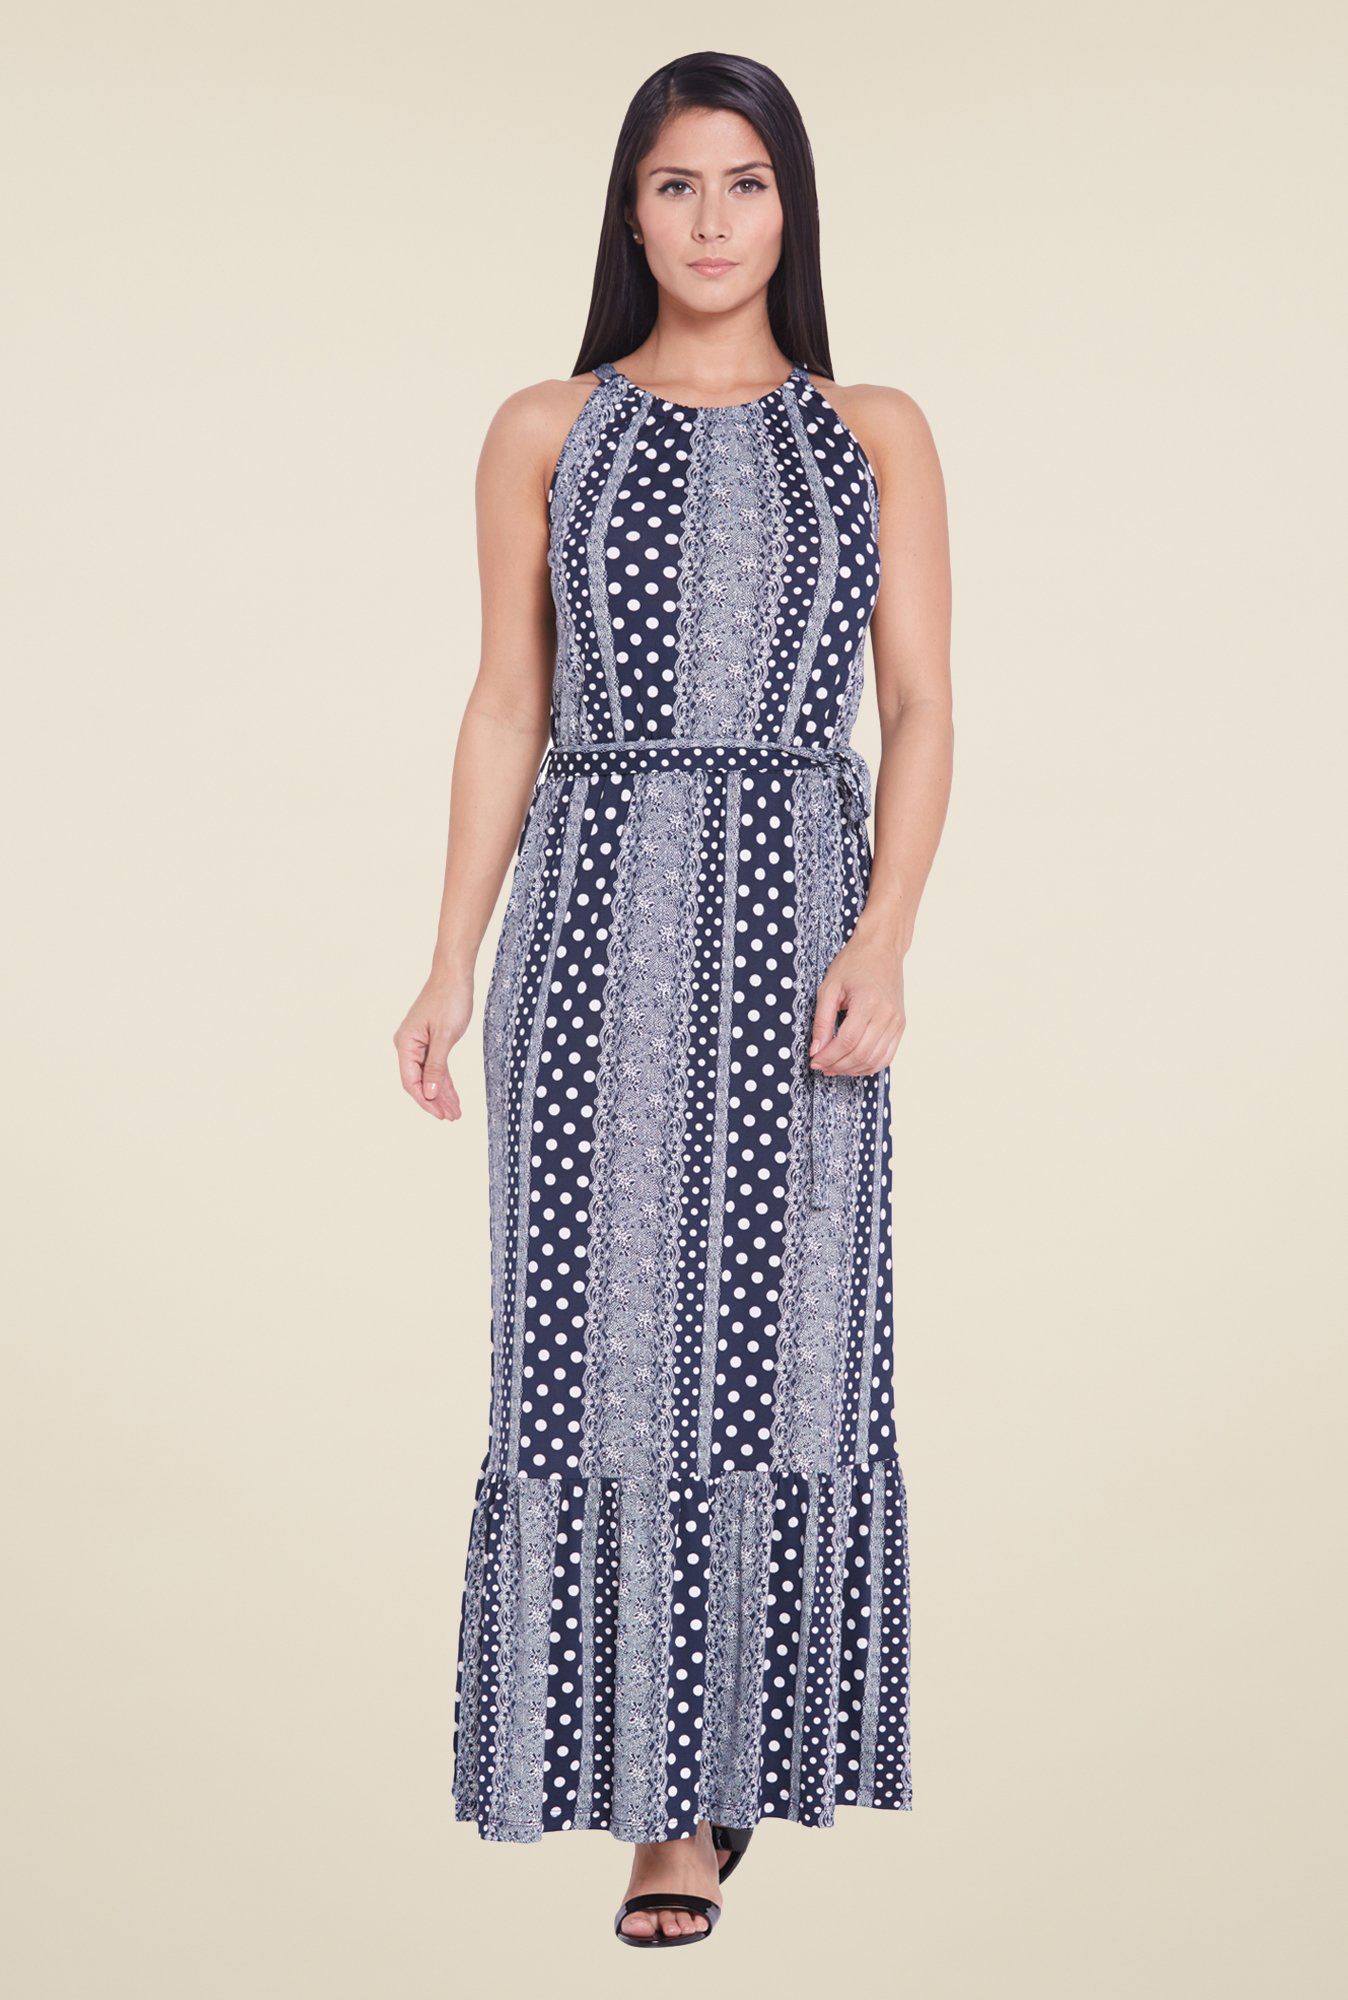 Globus Navy Printed Maxi Dress